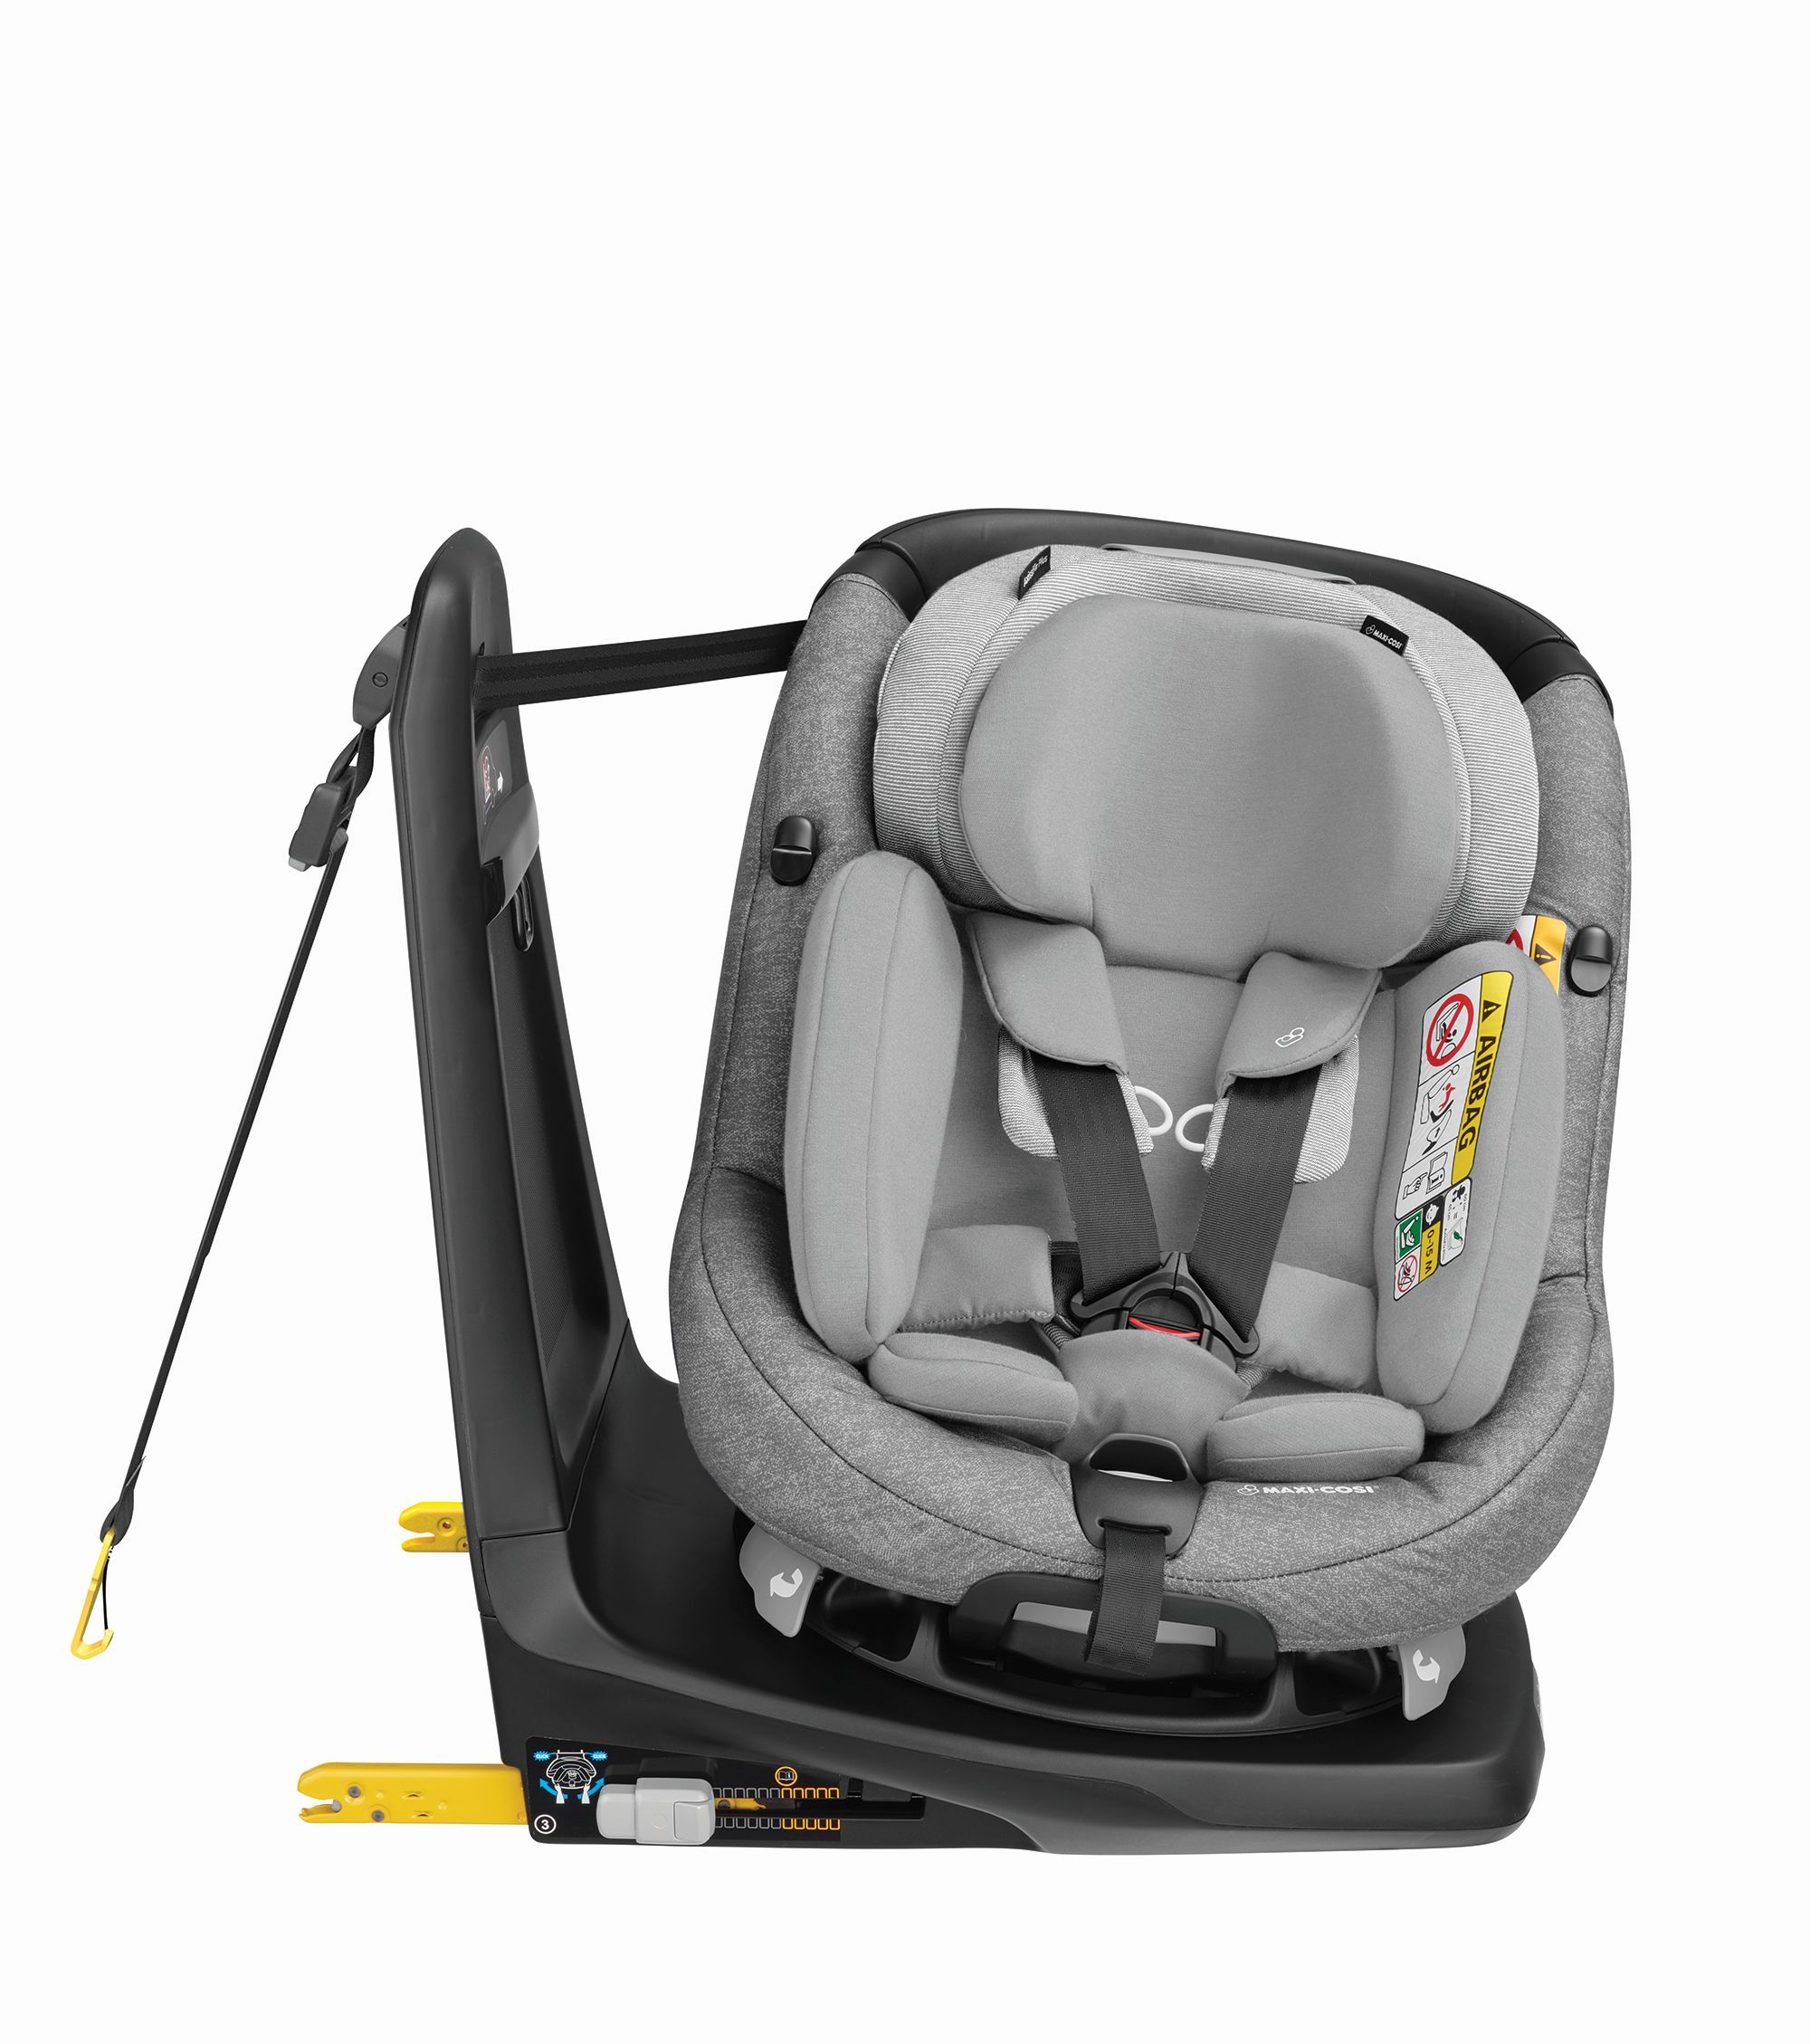 maxi cosi kindersitz axissfix plus 2018 nomad grey buy at kidsroom car seats uk. Black Bedroom Furniture Sets. Home Design Ideas